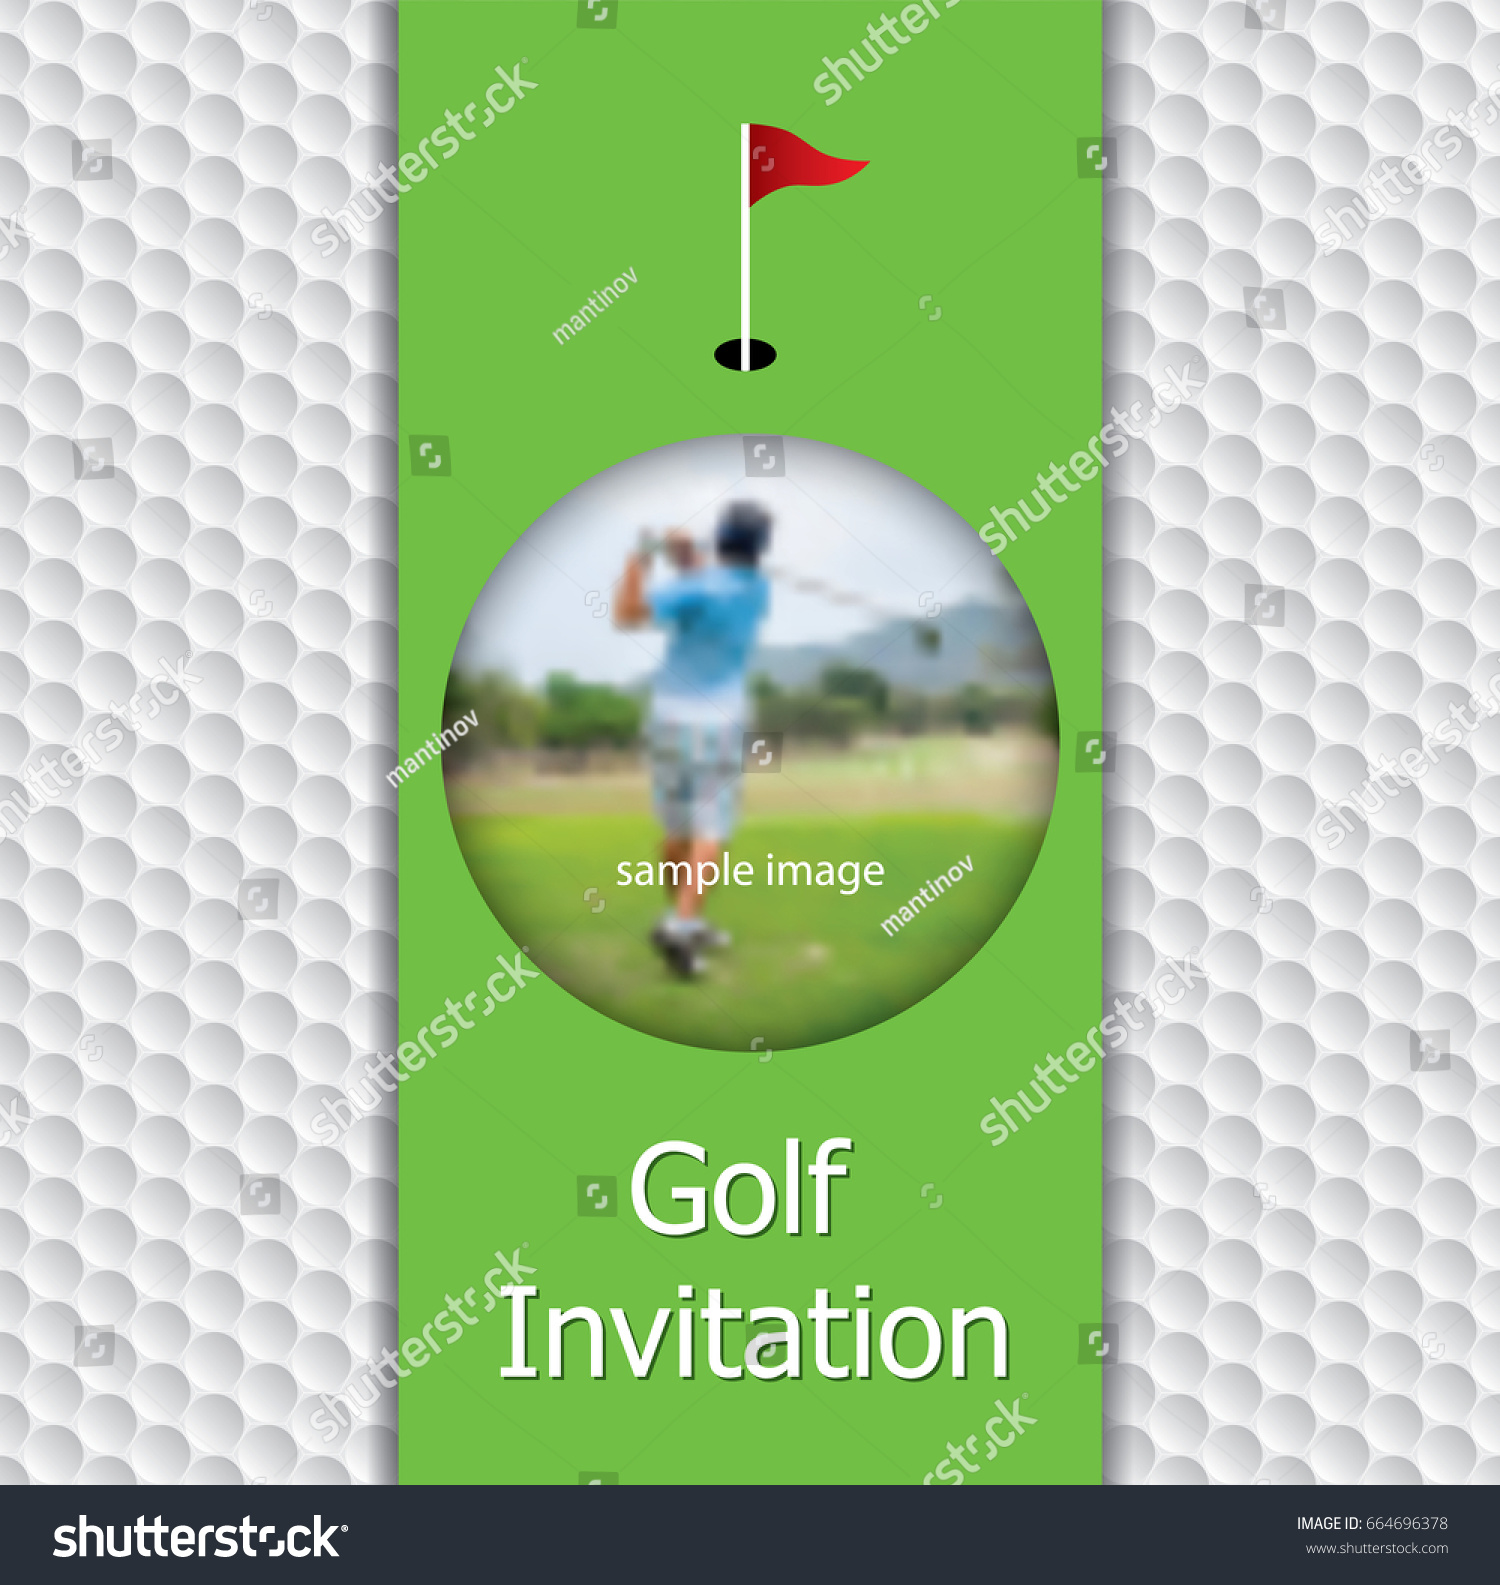 Golf tournament invitation flyer template graphic stock vector golf tournament invitation flyer template graphic design on golf ball pattern texture with sample image stopboris Images